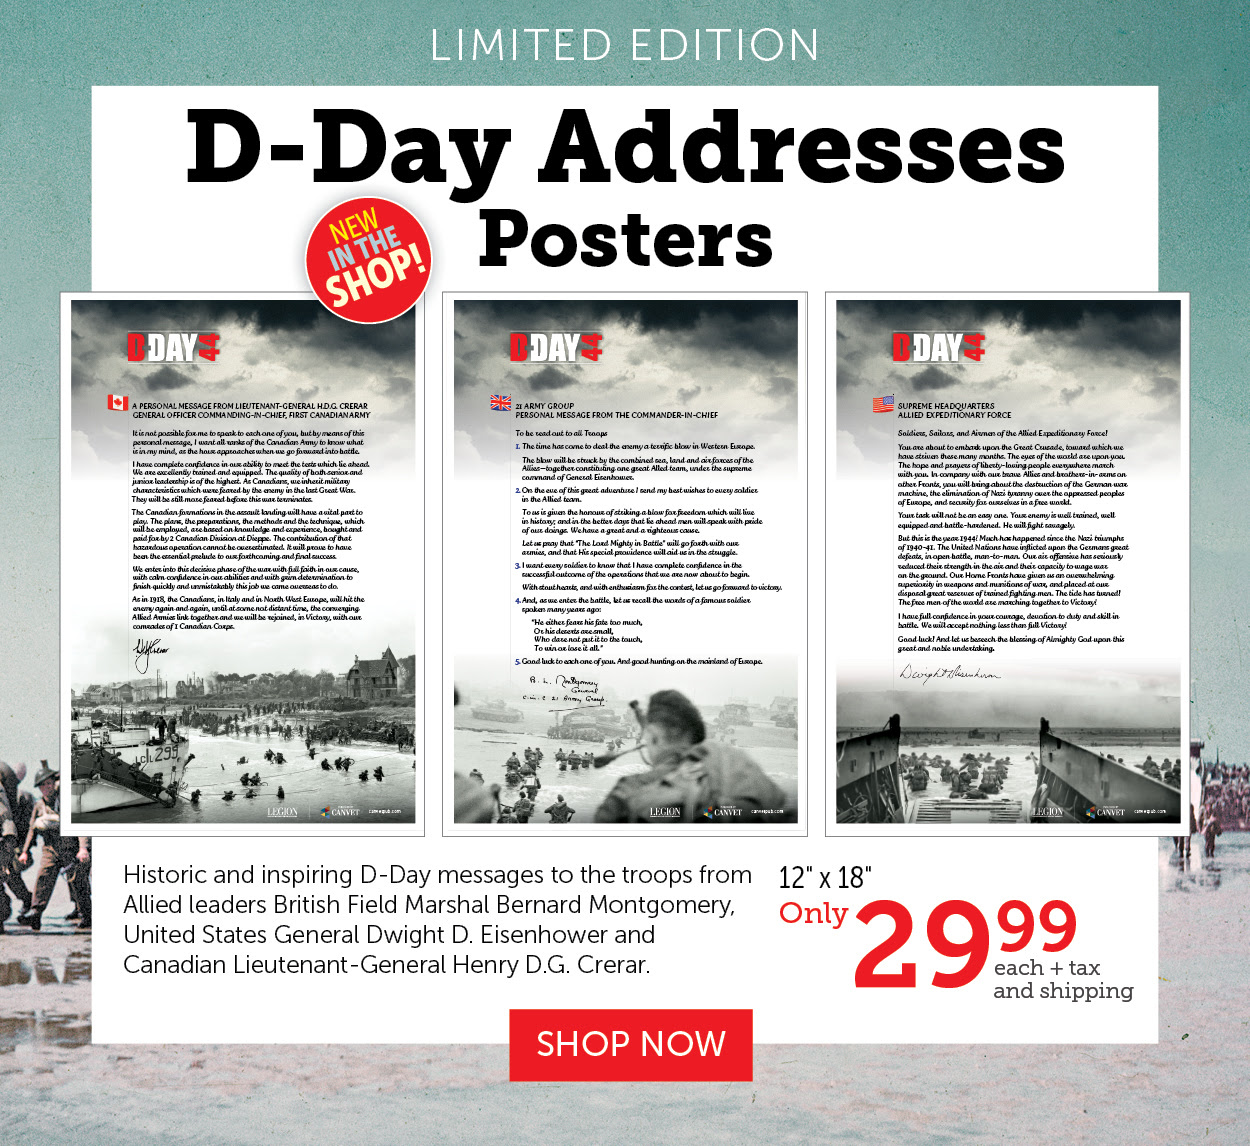 D-Day Addresses